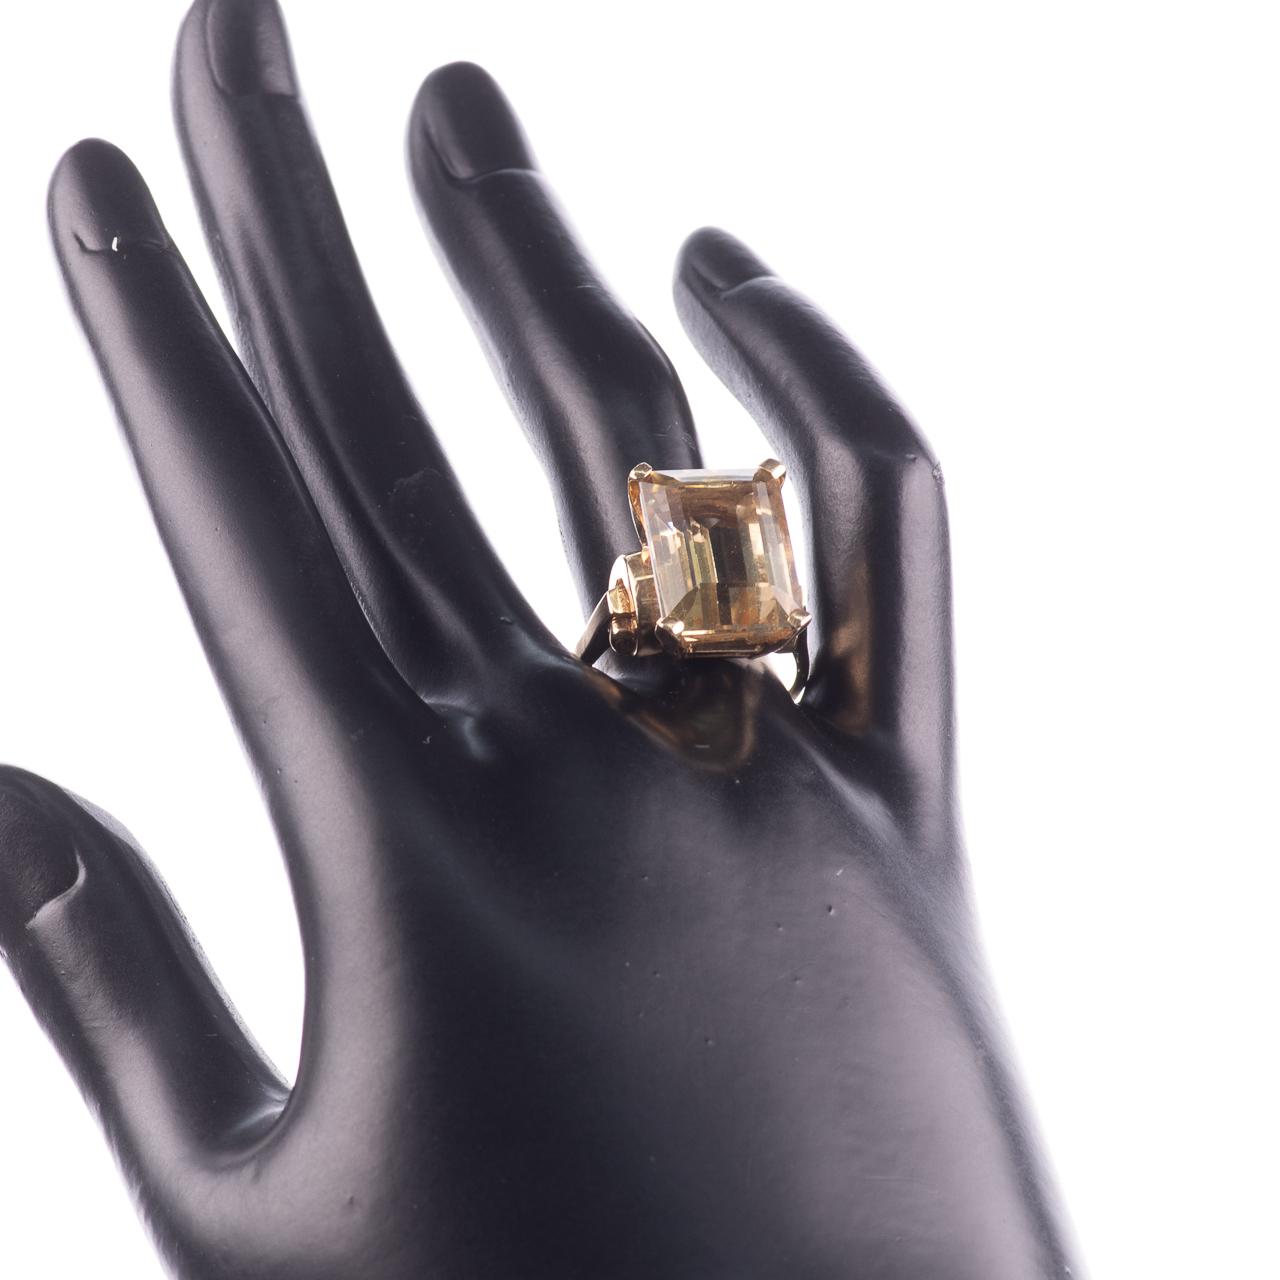 14ct Gold 15ct Citrine Ring - Image 2 of 7